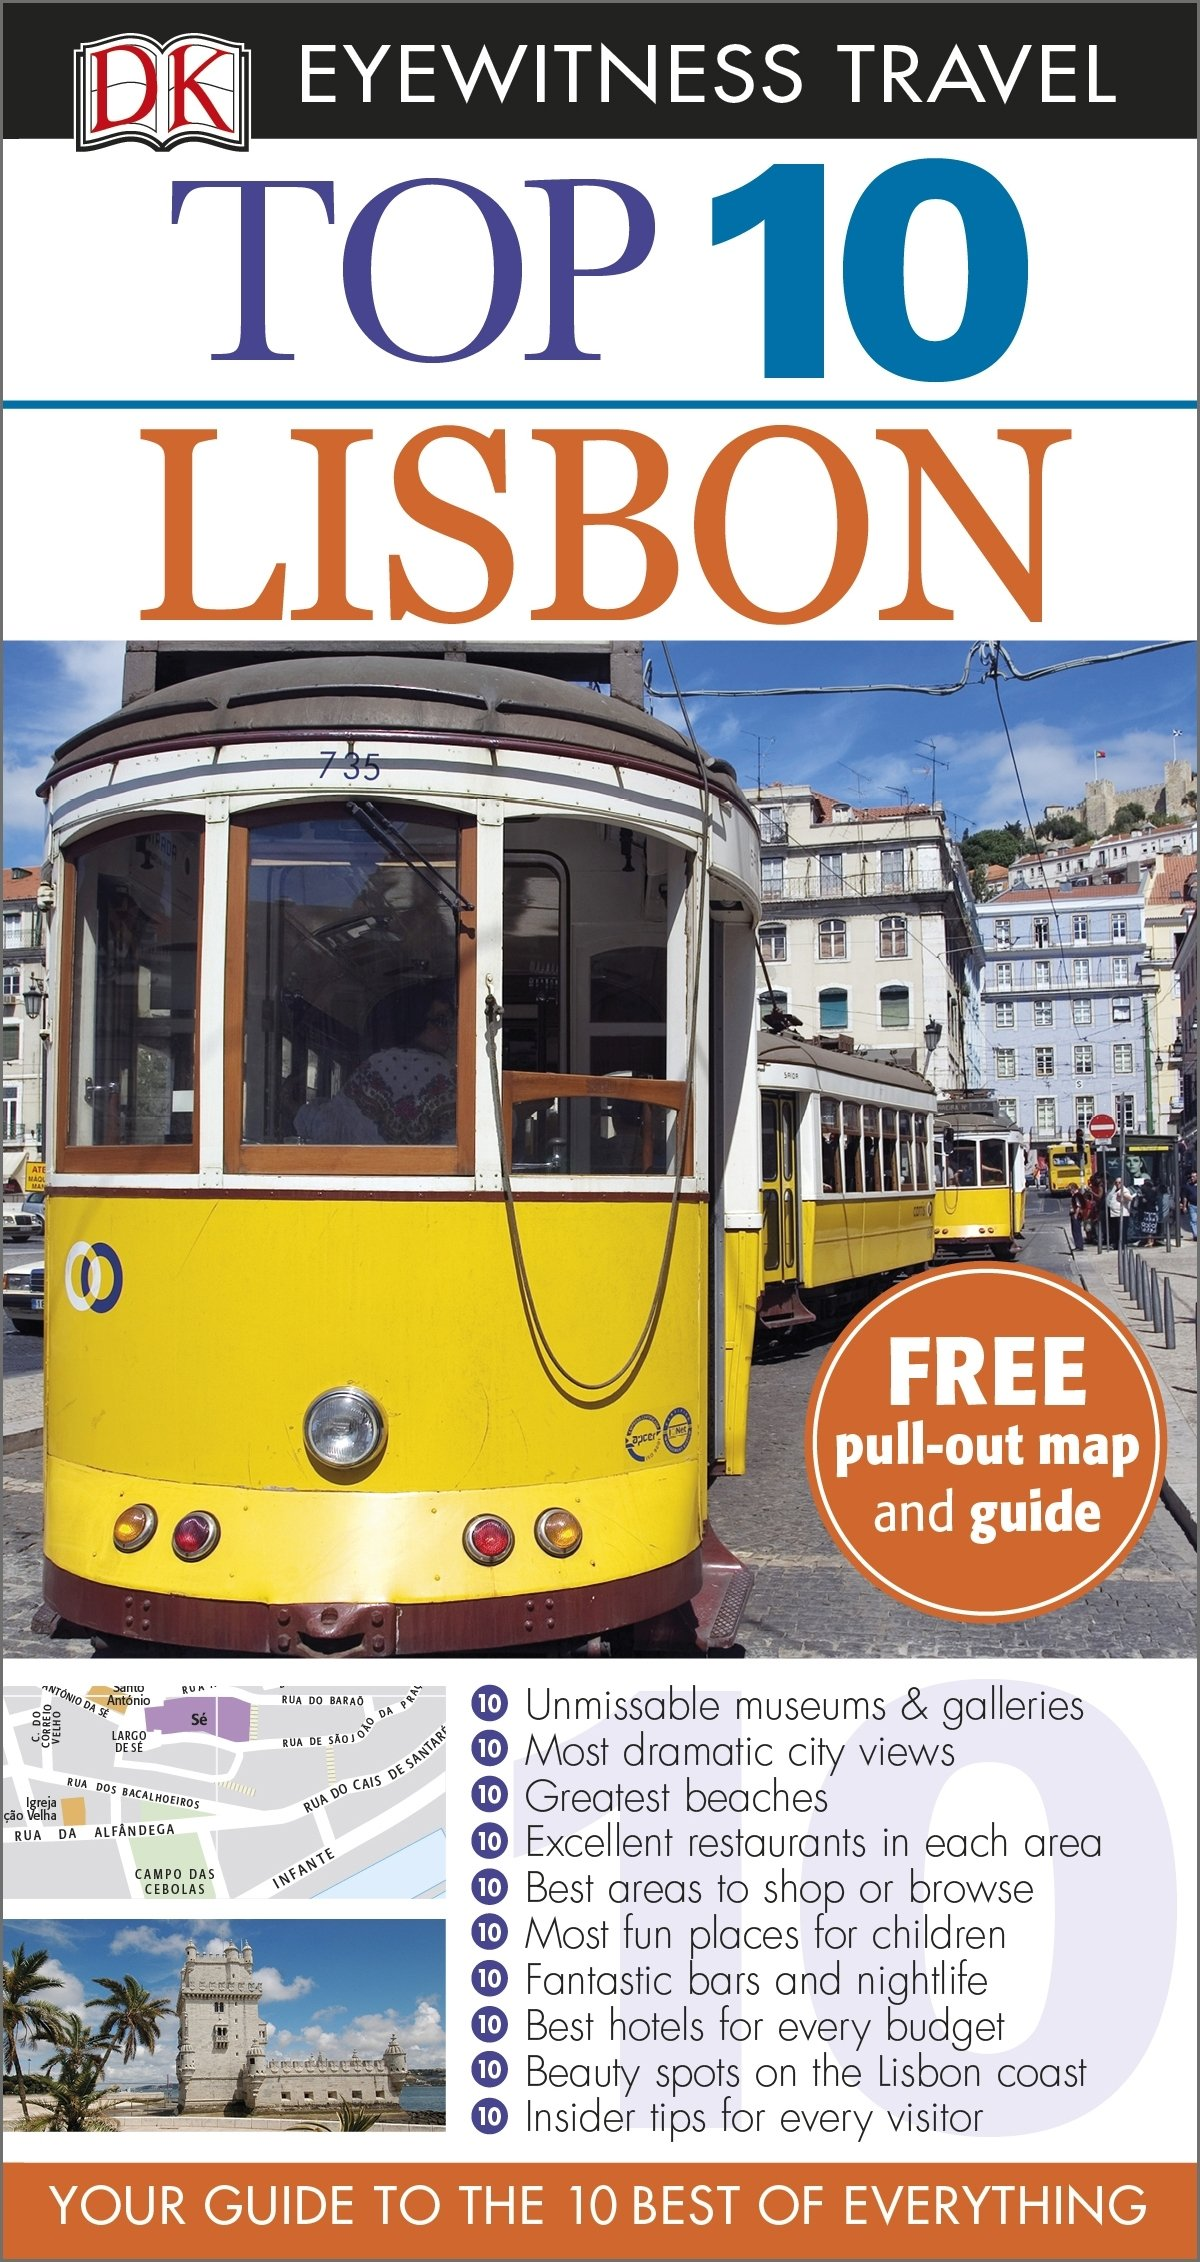 DK Eyewitness Top 10 Travel Guide: Lisbon (DK Eyewitness Travel Guide)